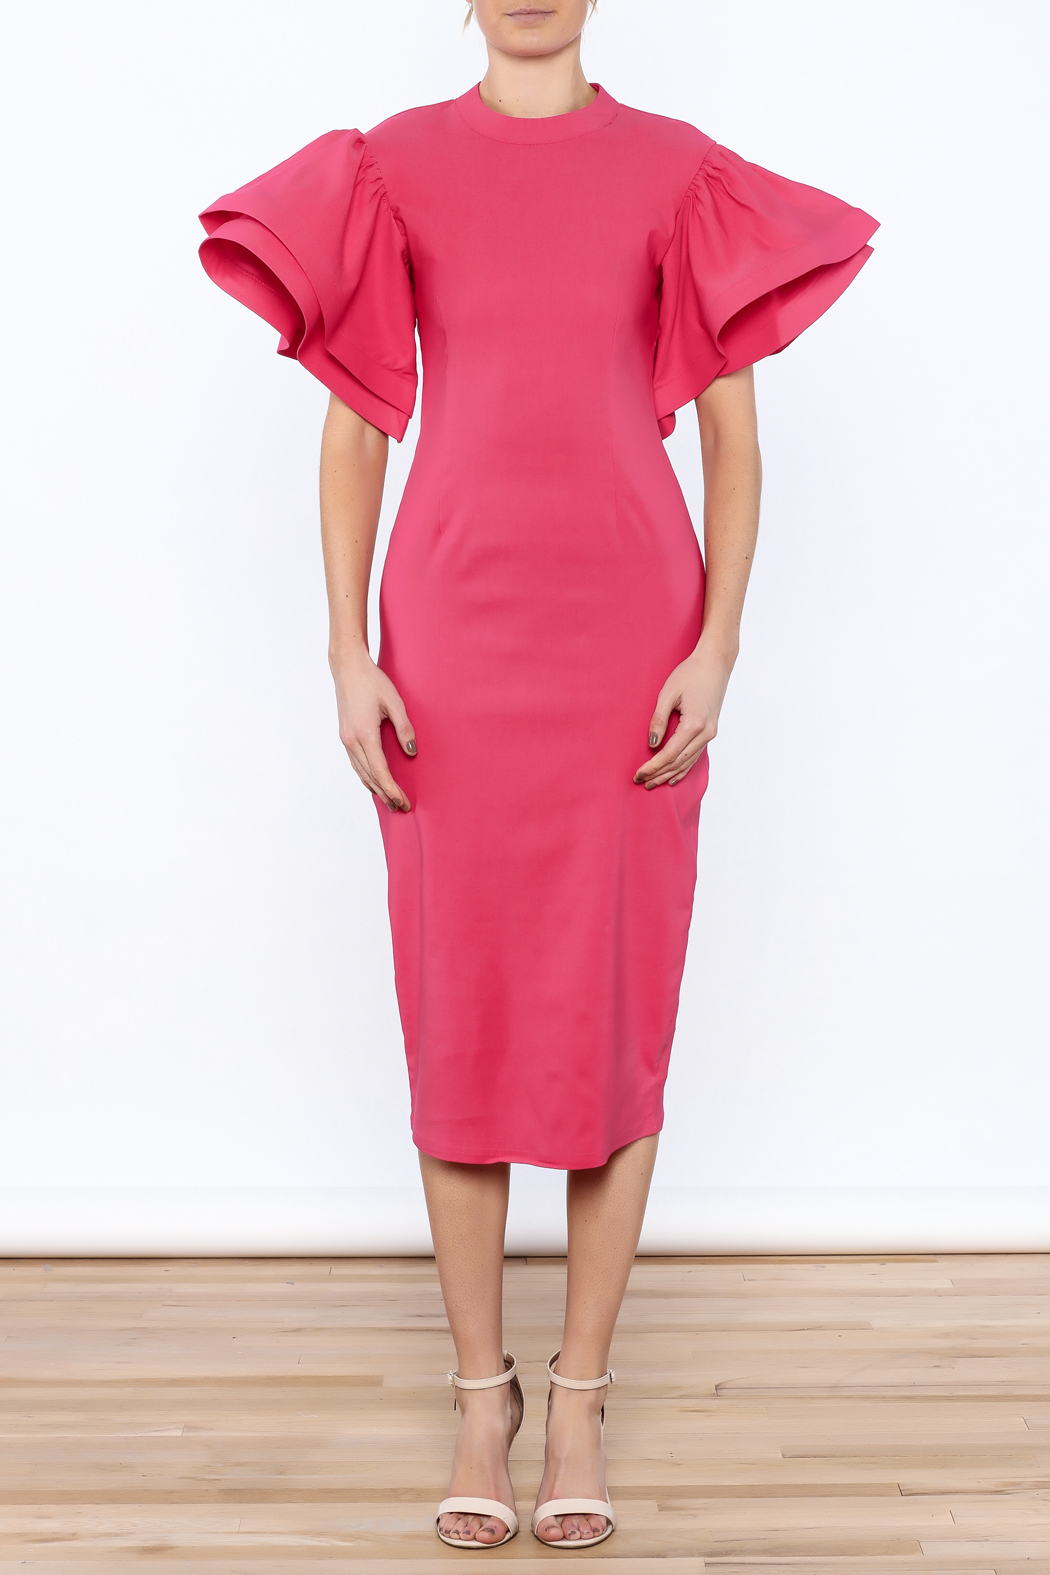 7685caedaa3 Eien Ruffled Midi Dress from South Carolina by Holictique — Shoptiques